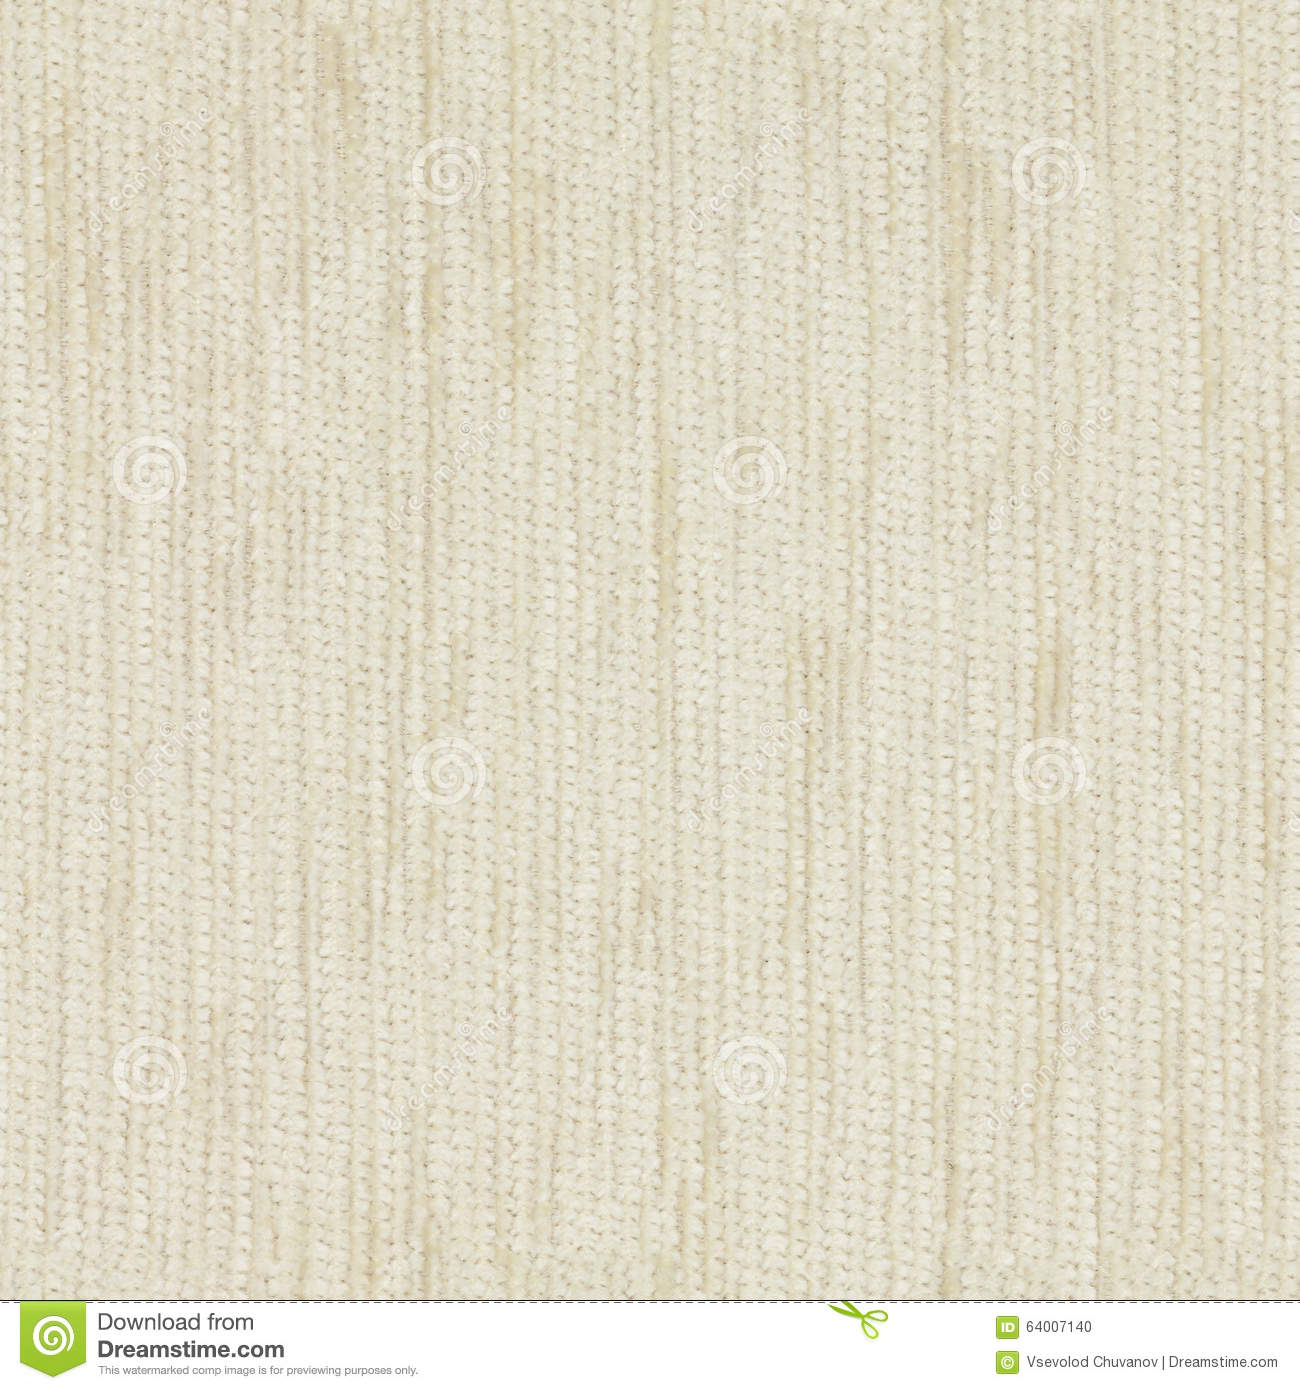 Light Beige Color For Living Room: Light Beige Seamless Texture Of Fabric Stock Photo